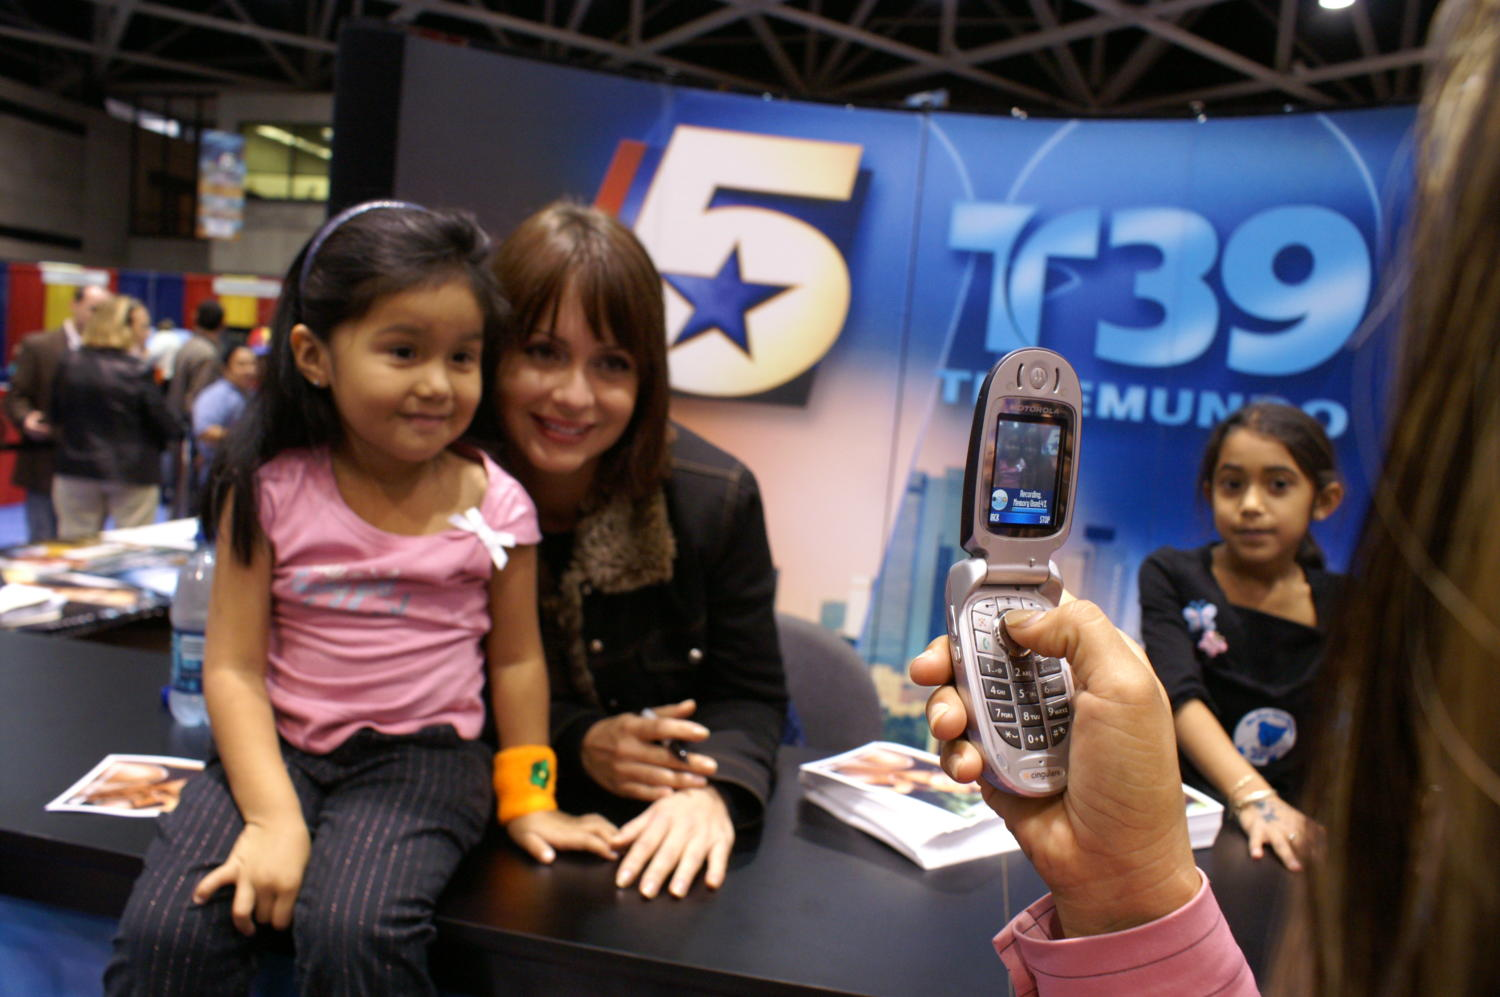 [Photo of Gabriela and young fan being taken with a cellphone]                                                                                                      [Sequence #]: 1 of 1